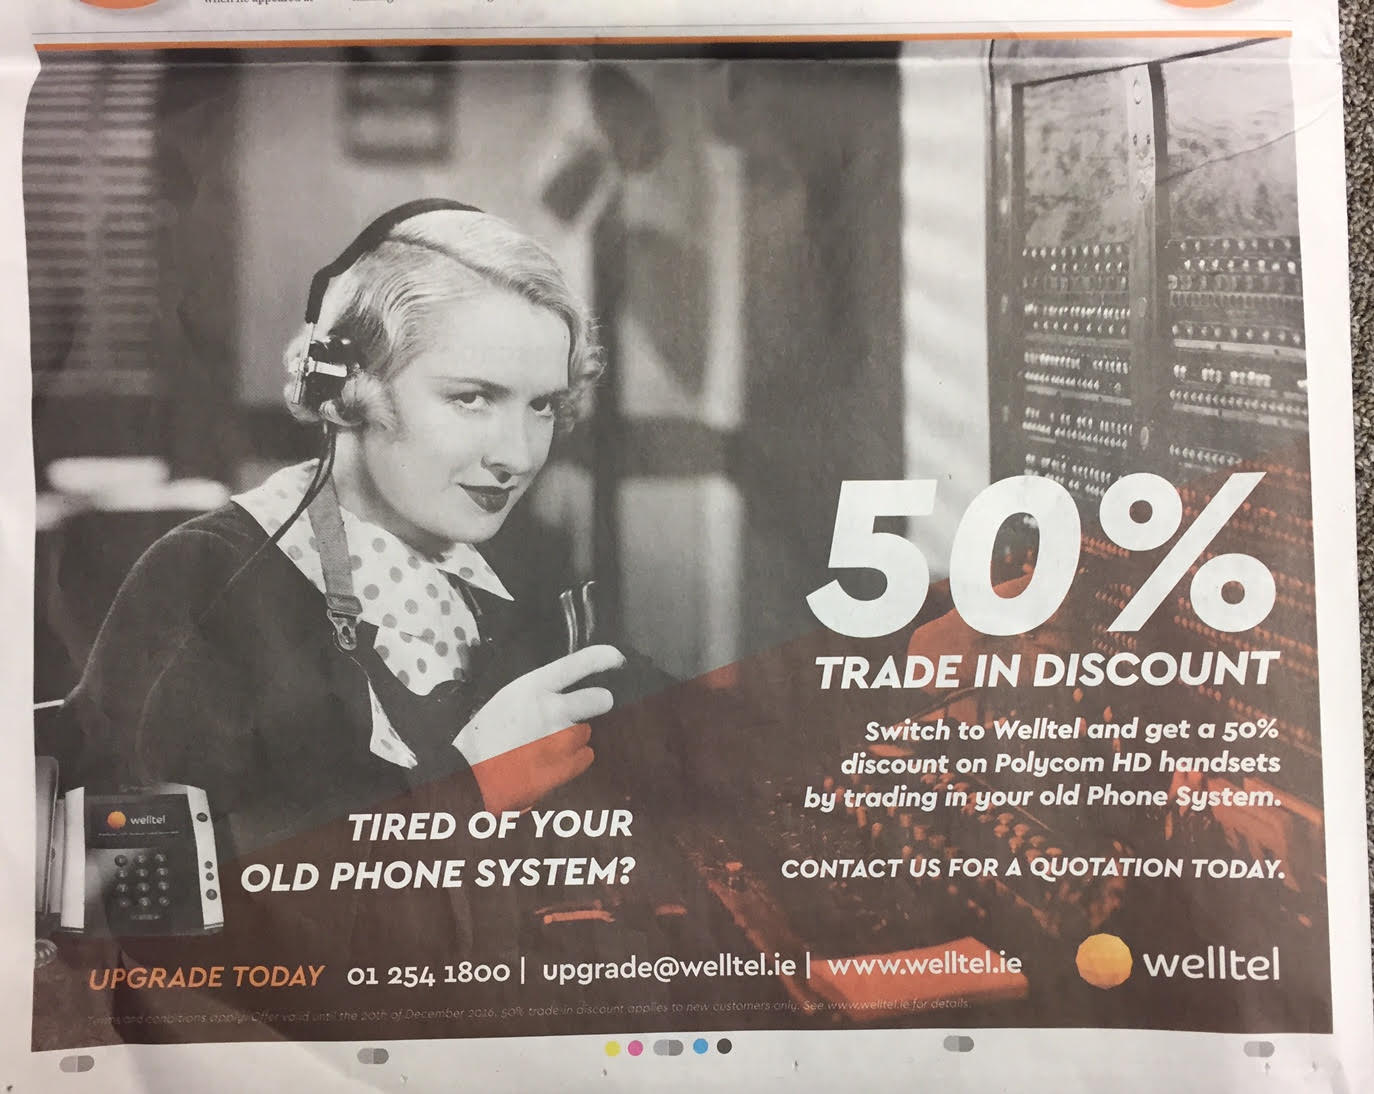 Welltel – tired of your old phone system – 50% trade in discount